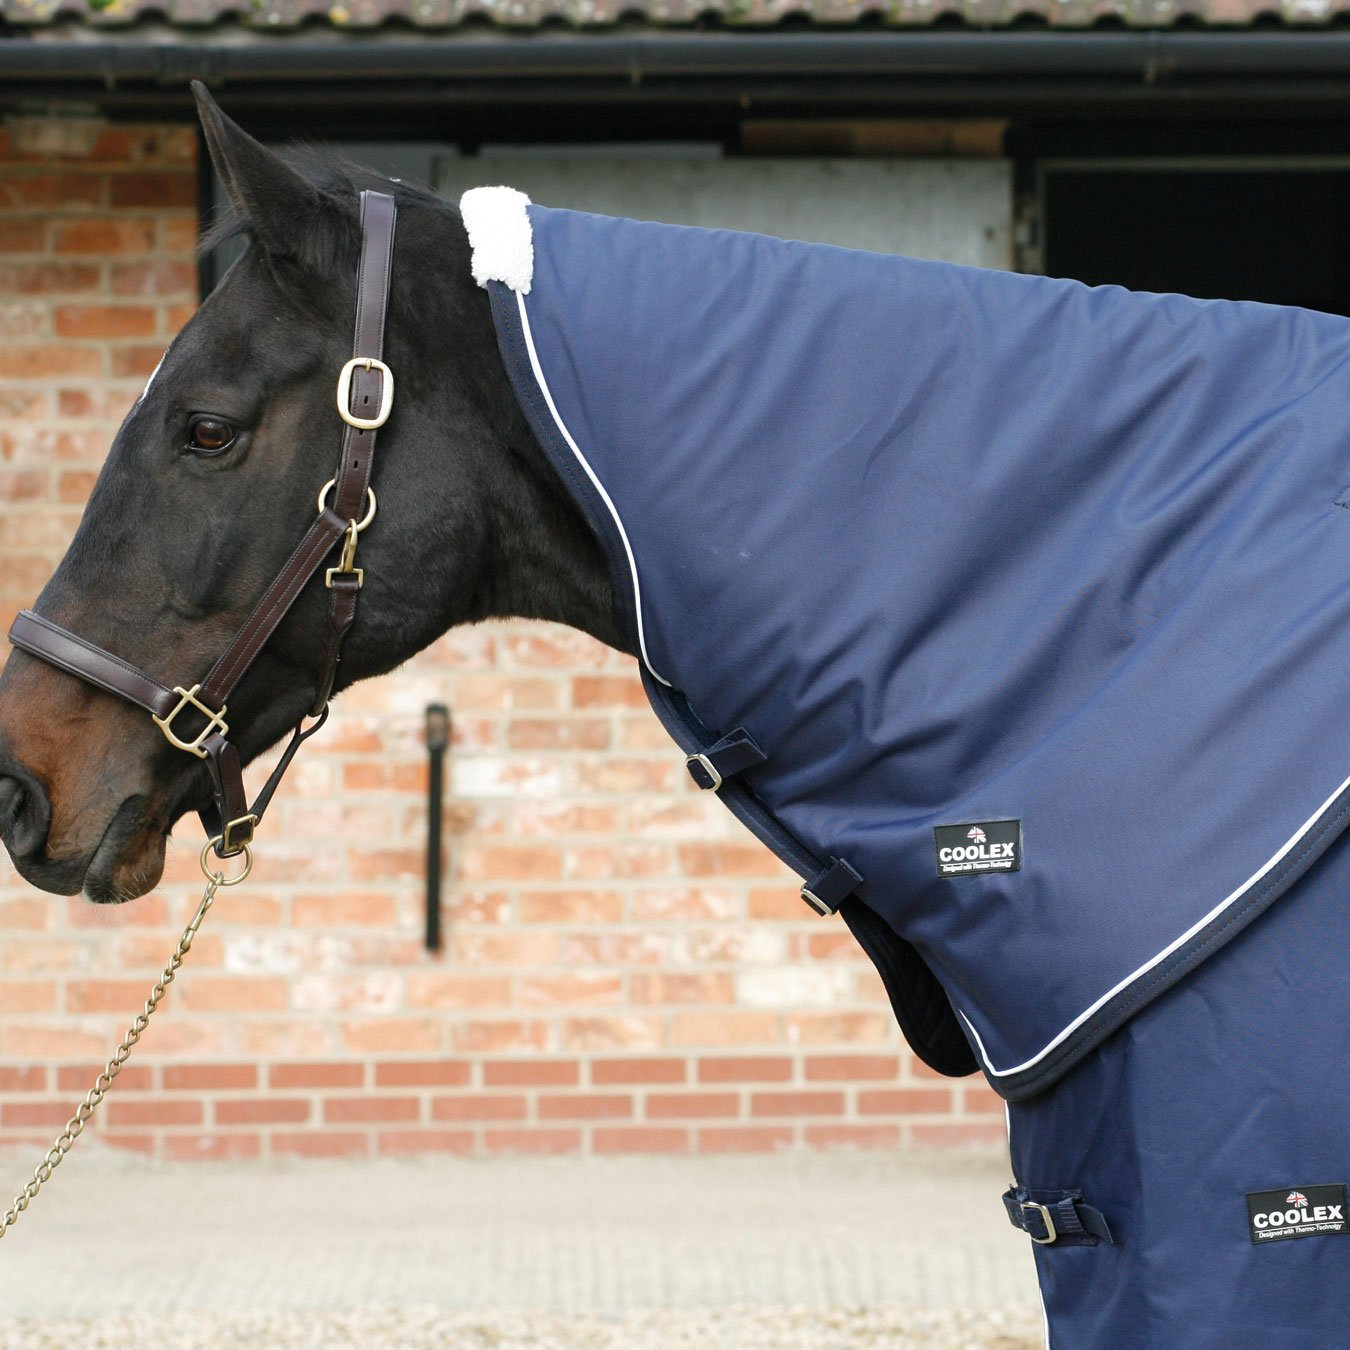 Free UK Shipping Mark Todd Coolex Cooler Rug